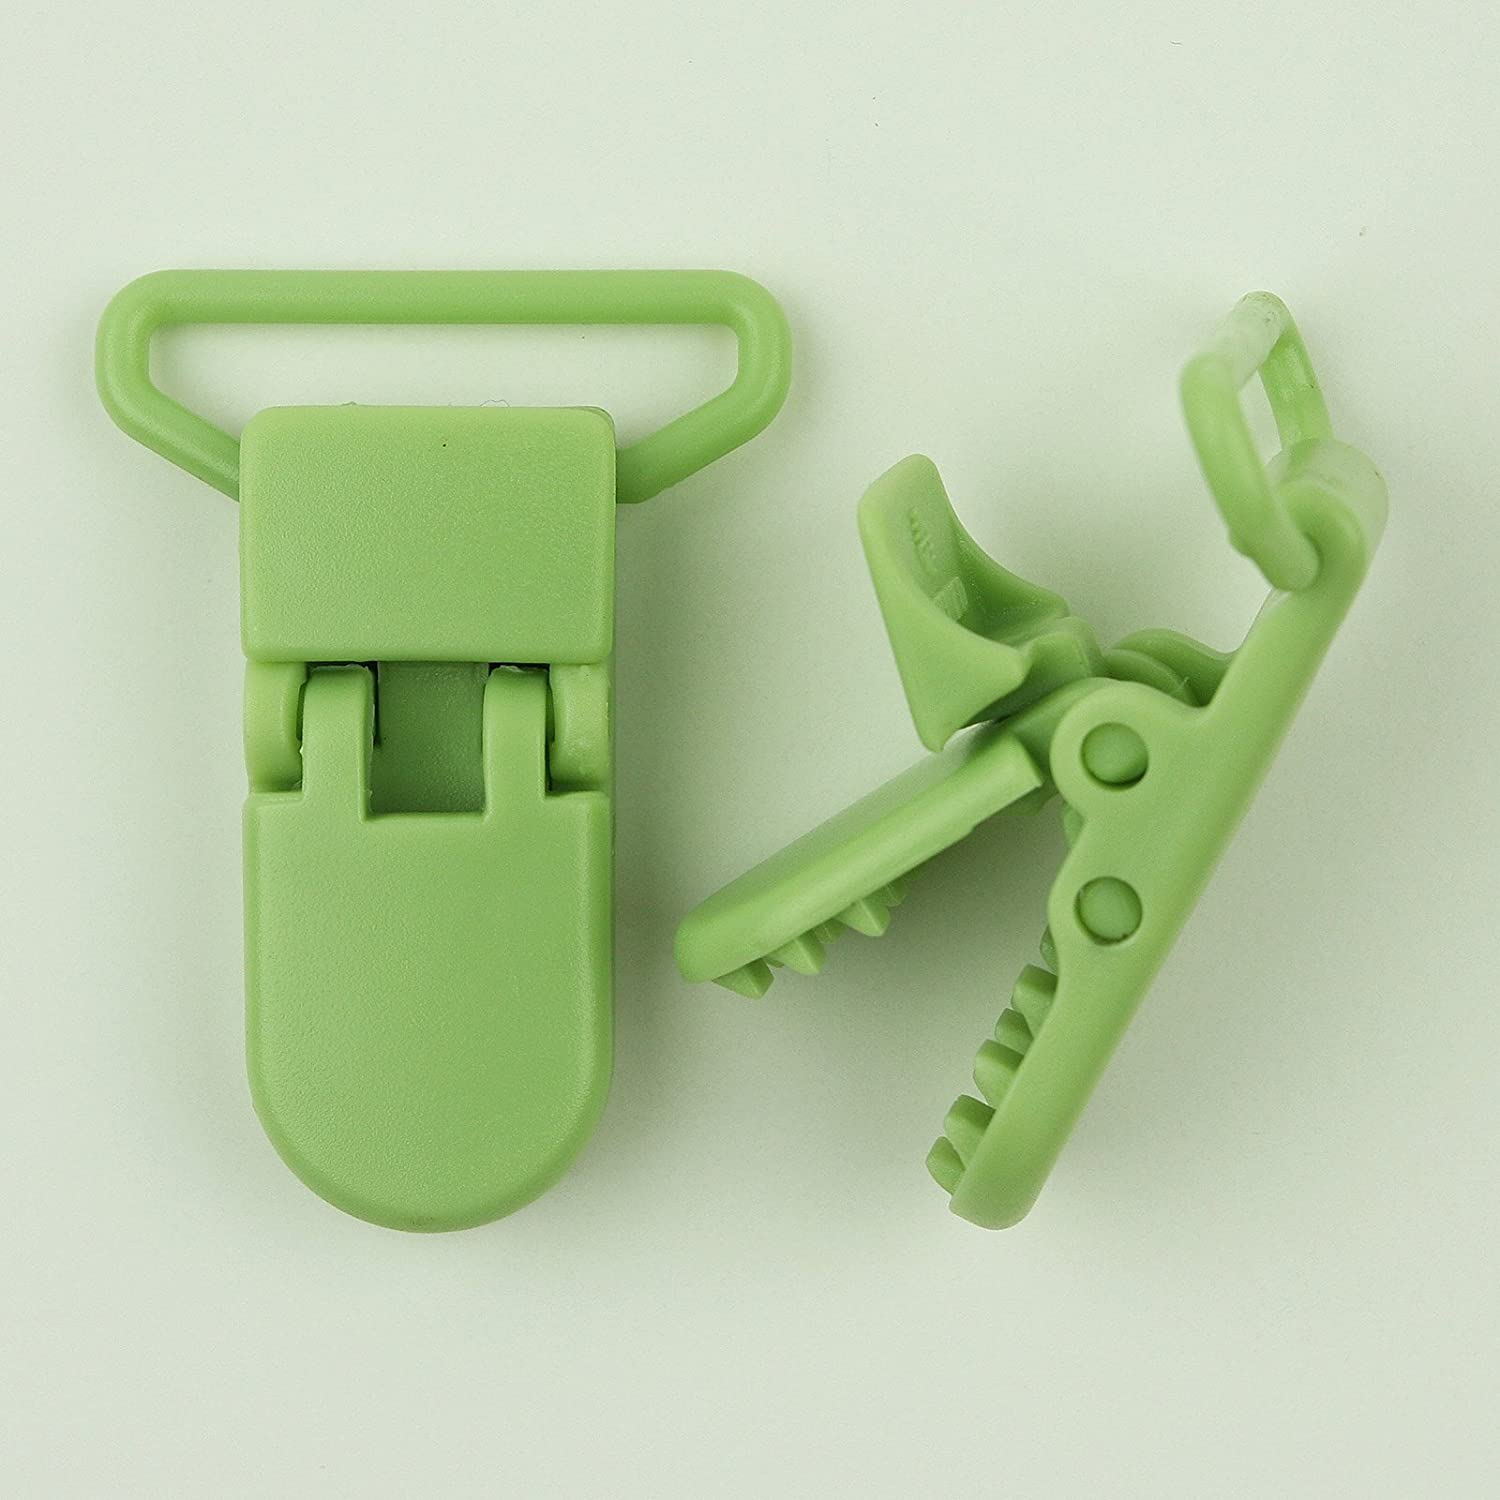 25 Meadow Green (G105) KAM 1 Plastic Pacifier Clips / Suspender Clips with Gripping Teeth for Soother/Paci/Pacifier/Dummy/Bib/Toy Holder Clip by KAM   B00DZV2HMK